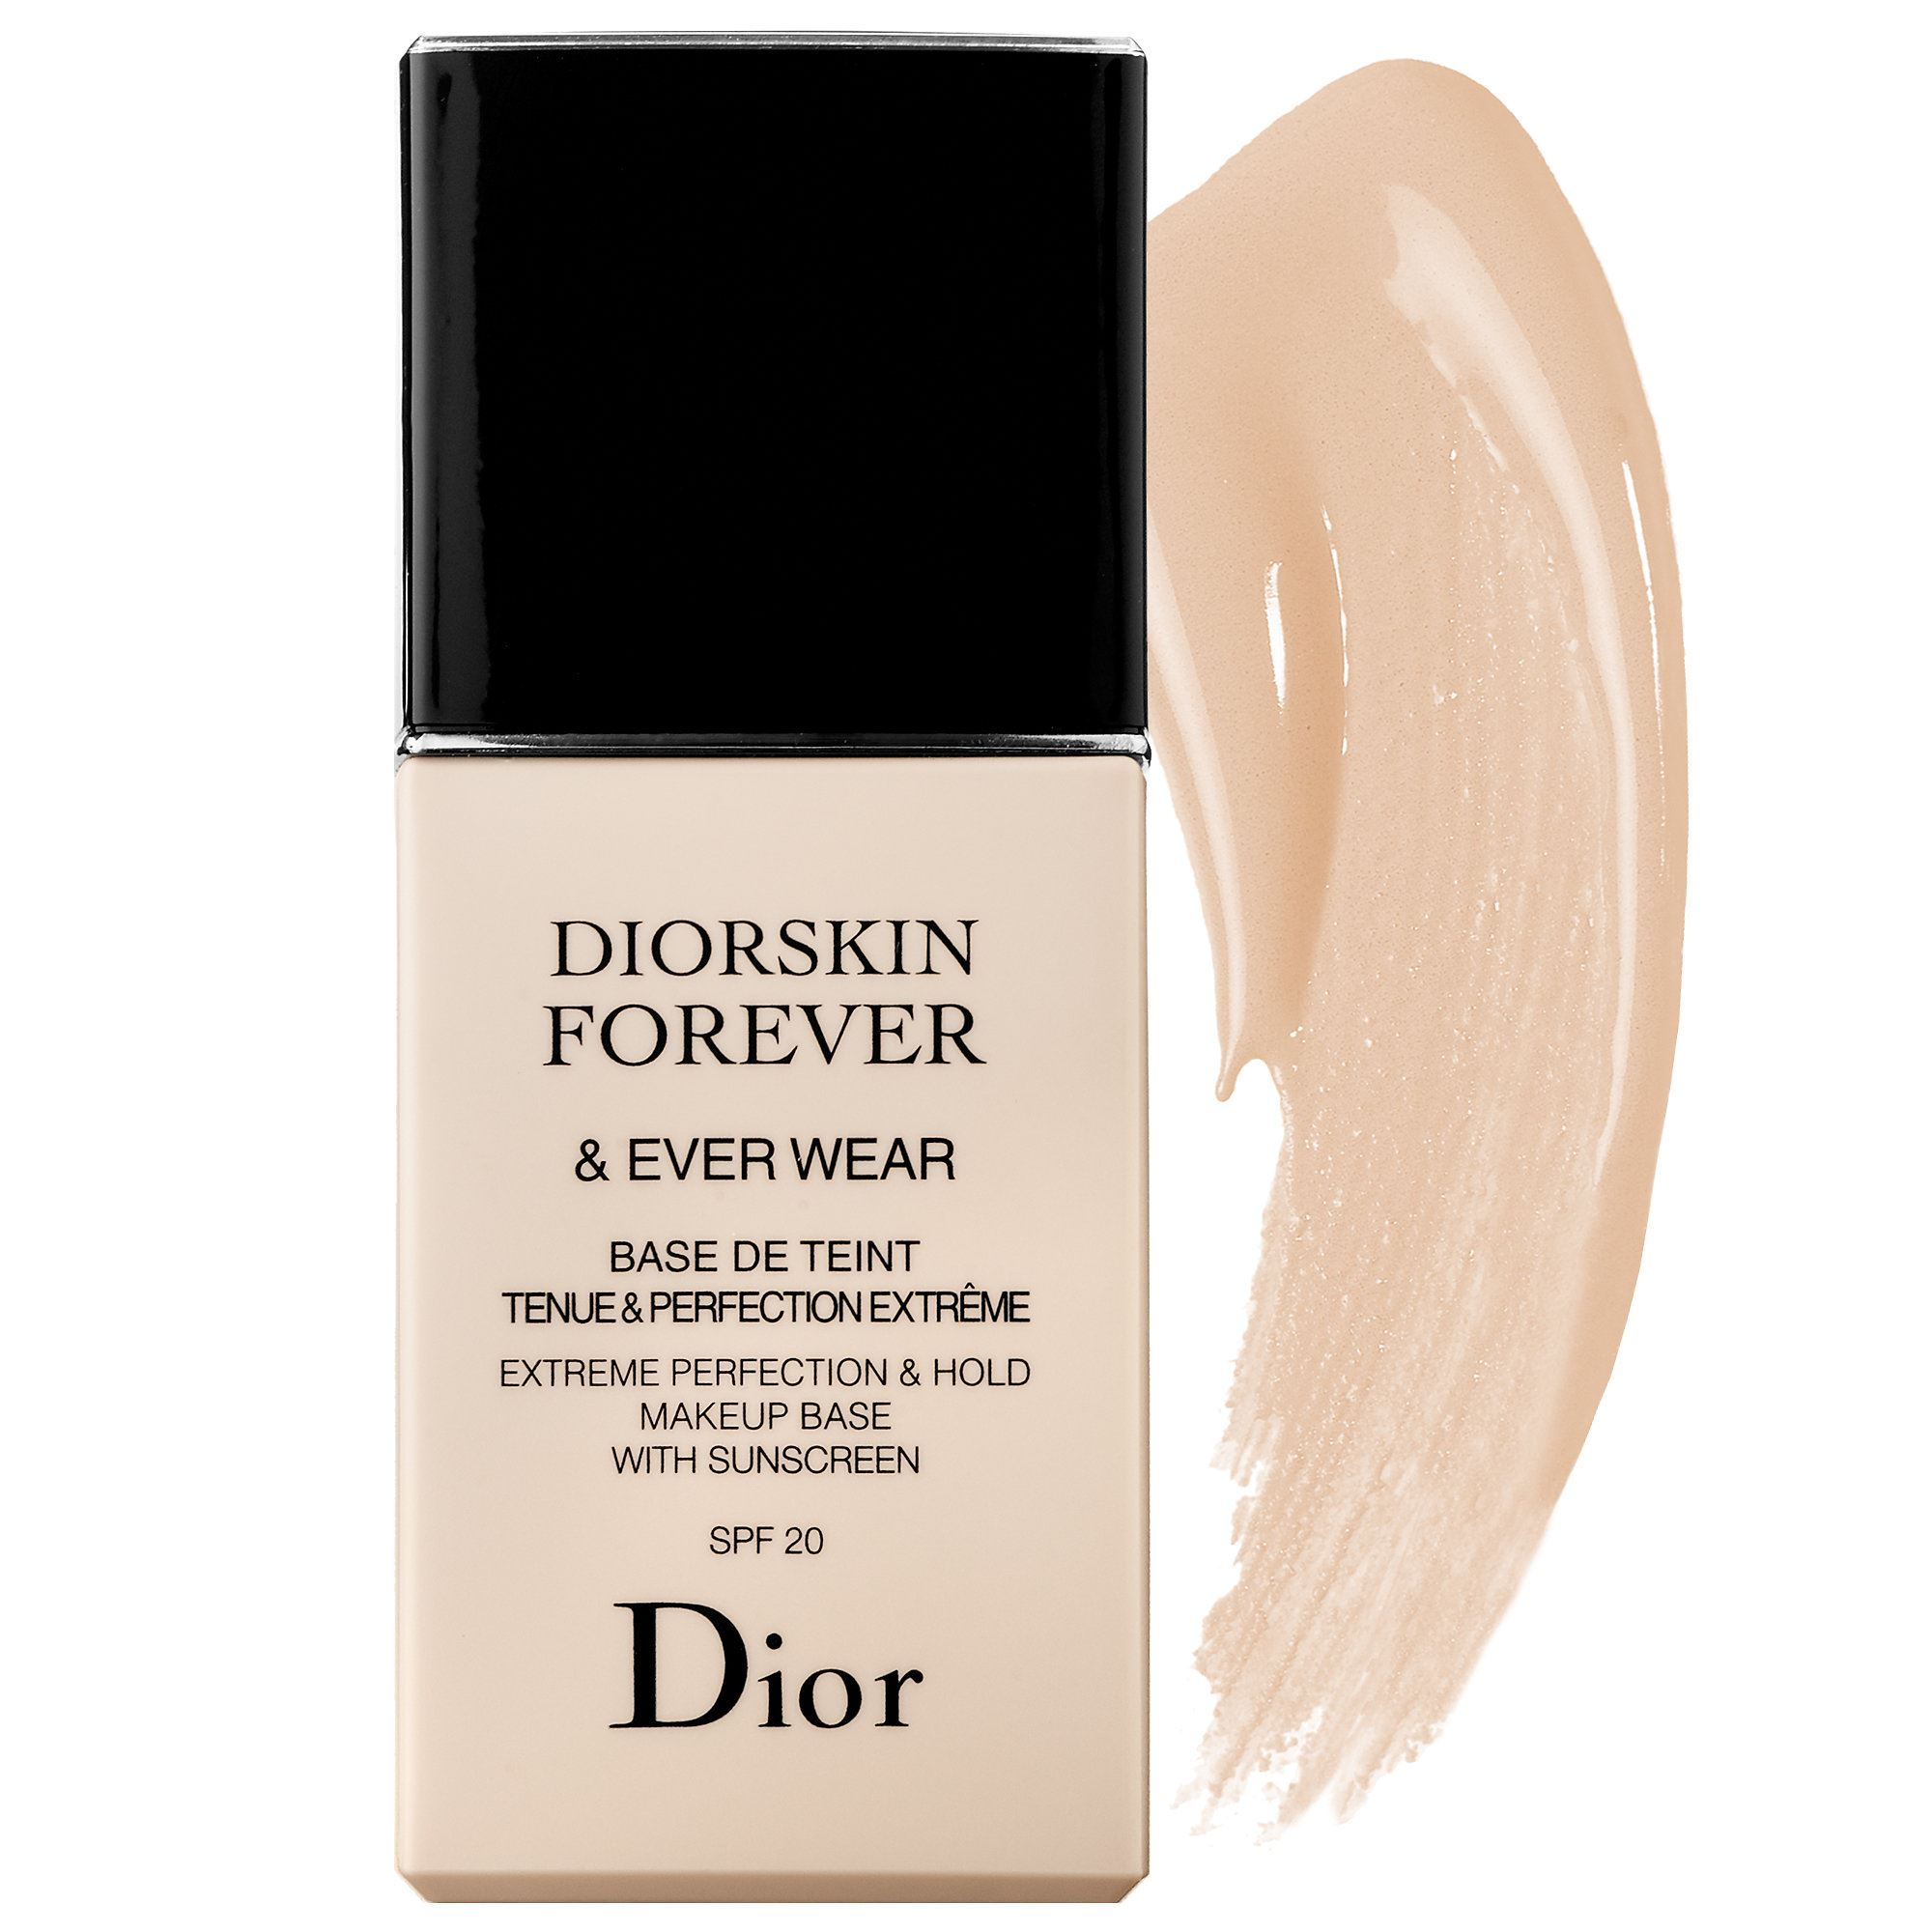 dior diorskin forever ever wear extreme perfection hold makeup base spf20. Black Bedroom Furniture Sets. Home Design Ideas